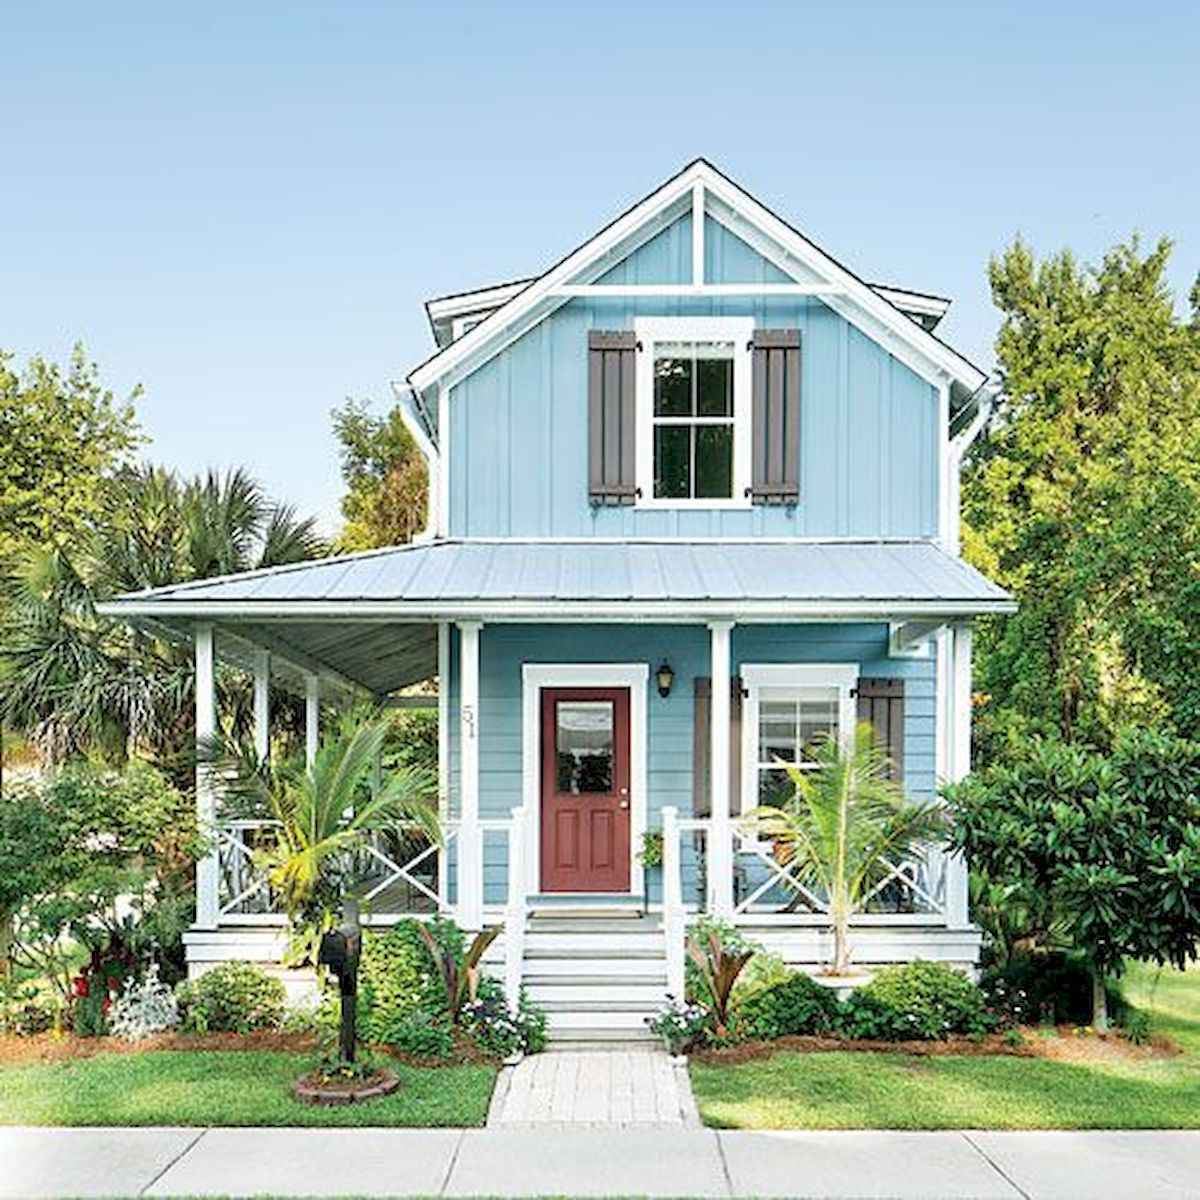 60 Beautiful Tiny House Plans Small Cottages Design Ideas (15)